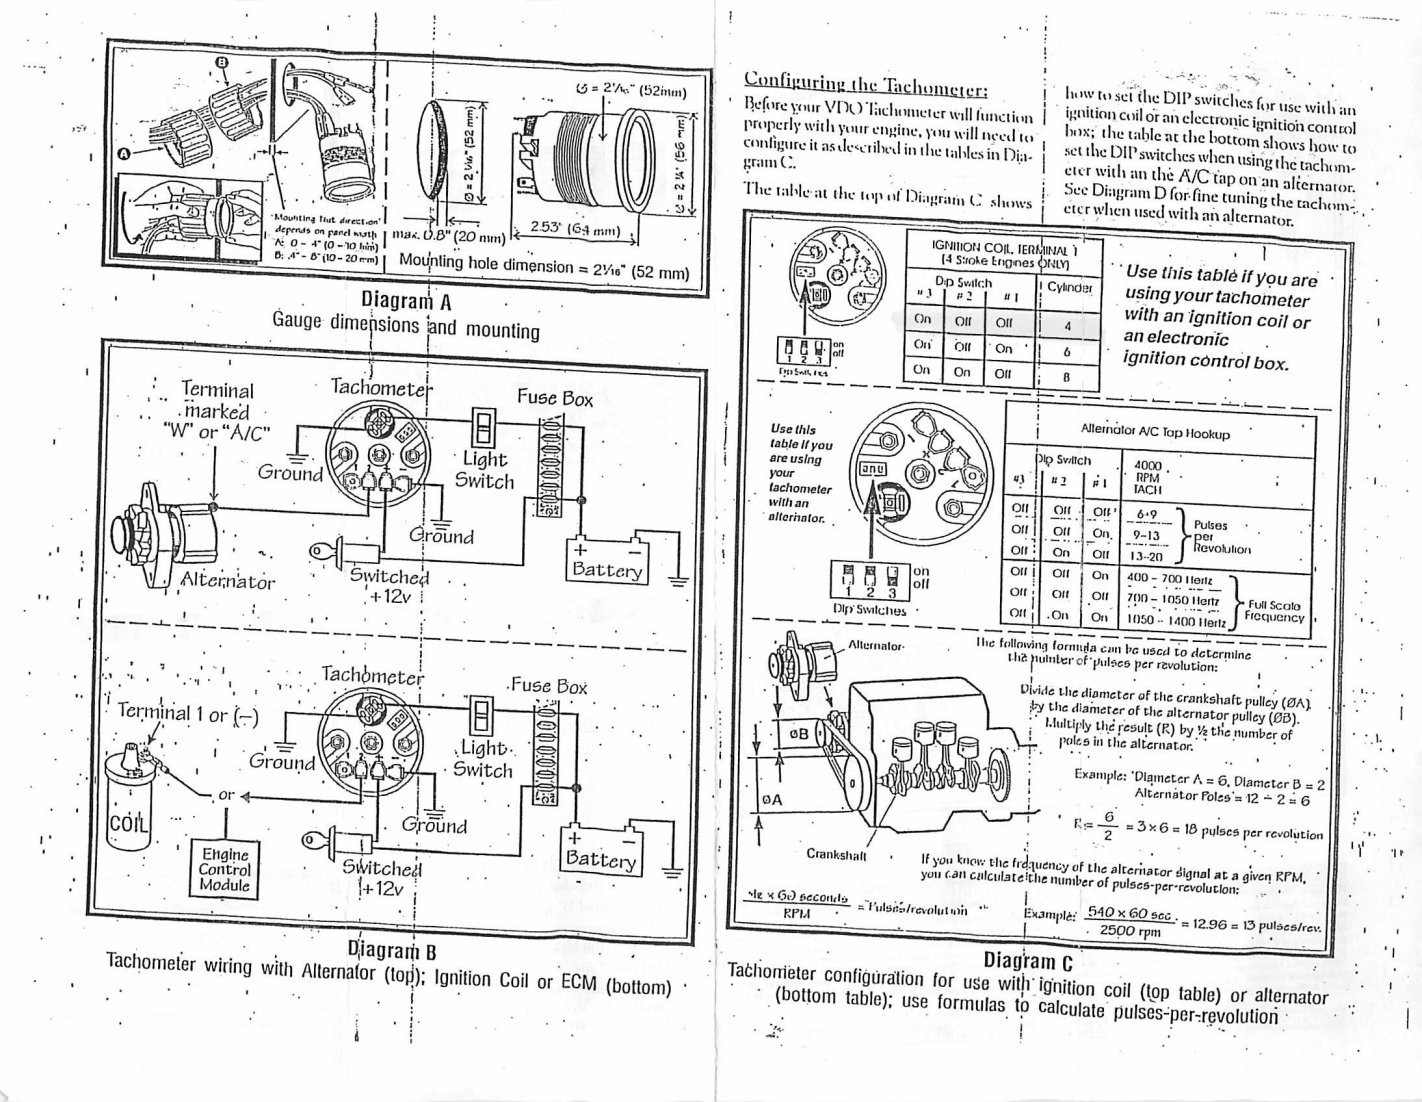 vdo tacho dip switch settings vdo marine tachometer wiring vdo gauge wiring diagram schematic